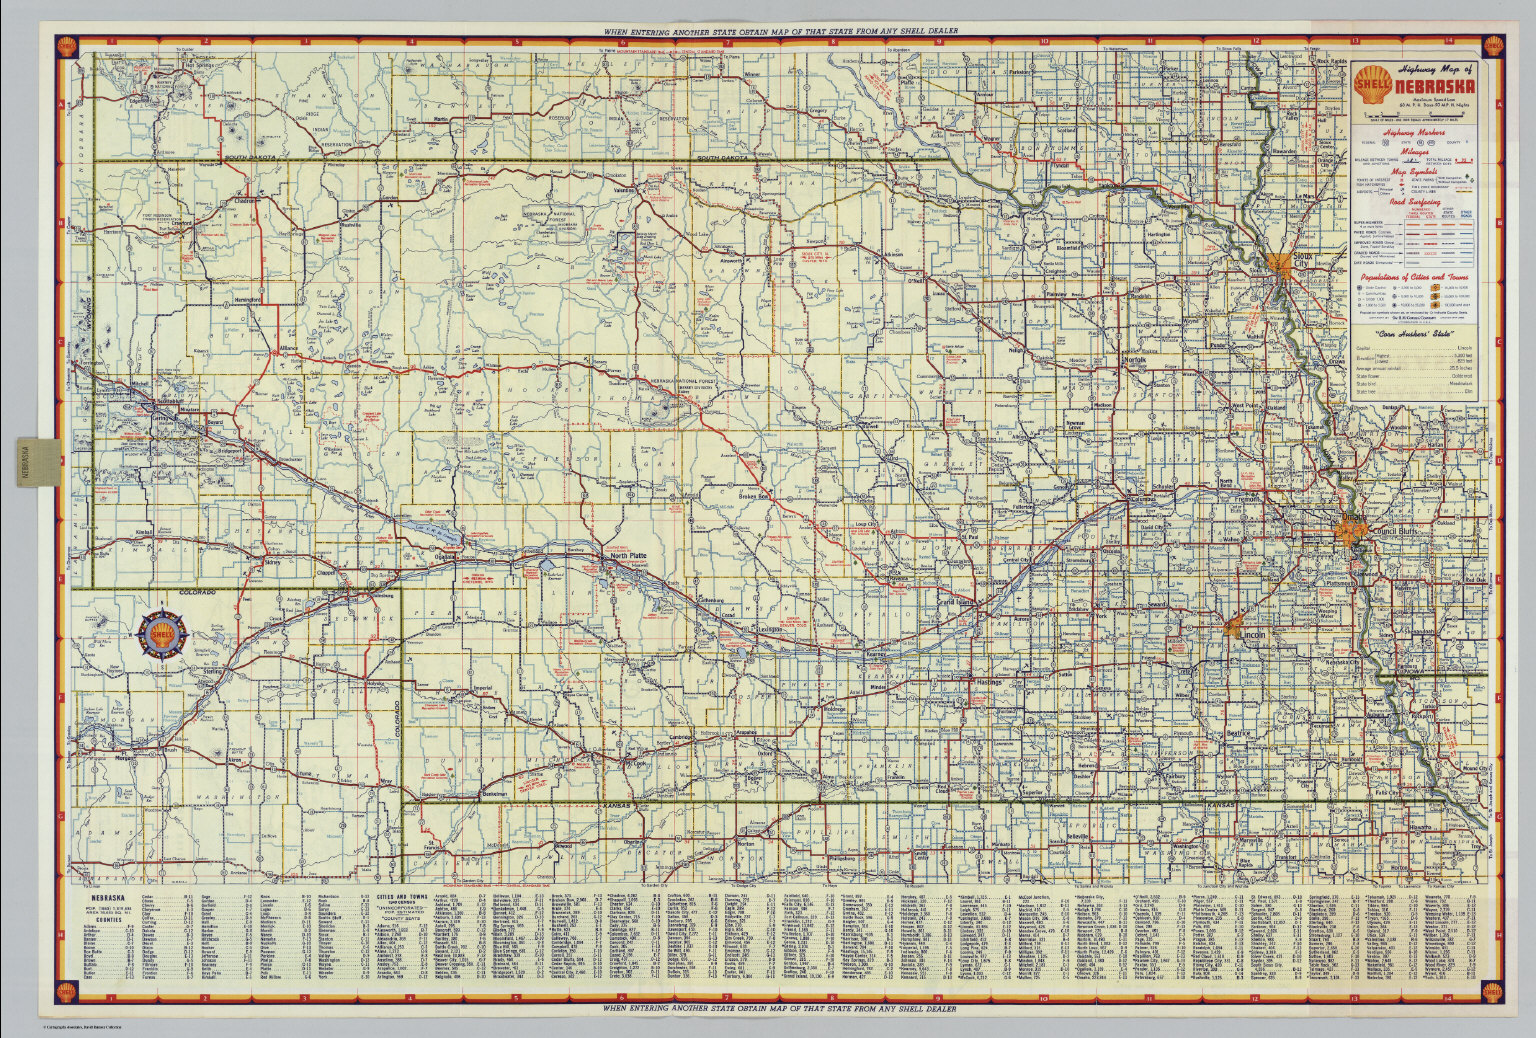 Shell Highway Map Of Nebraska David Rumsey Historical Map - Roadmap of nebraska